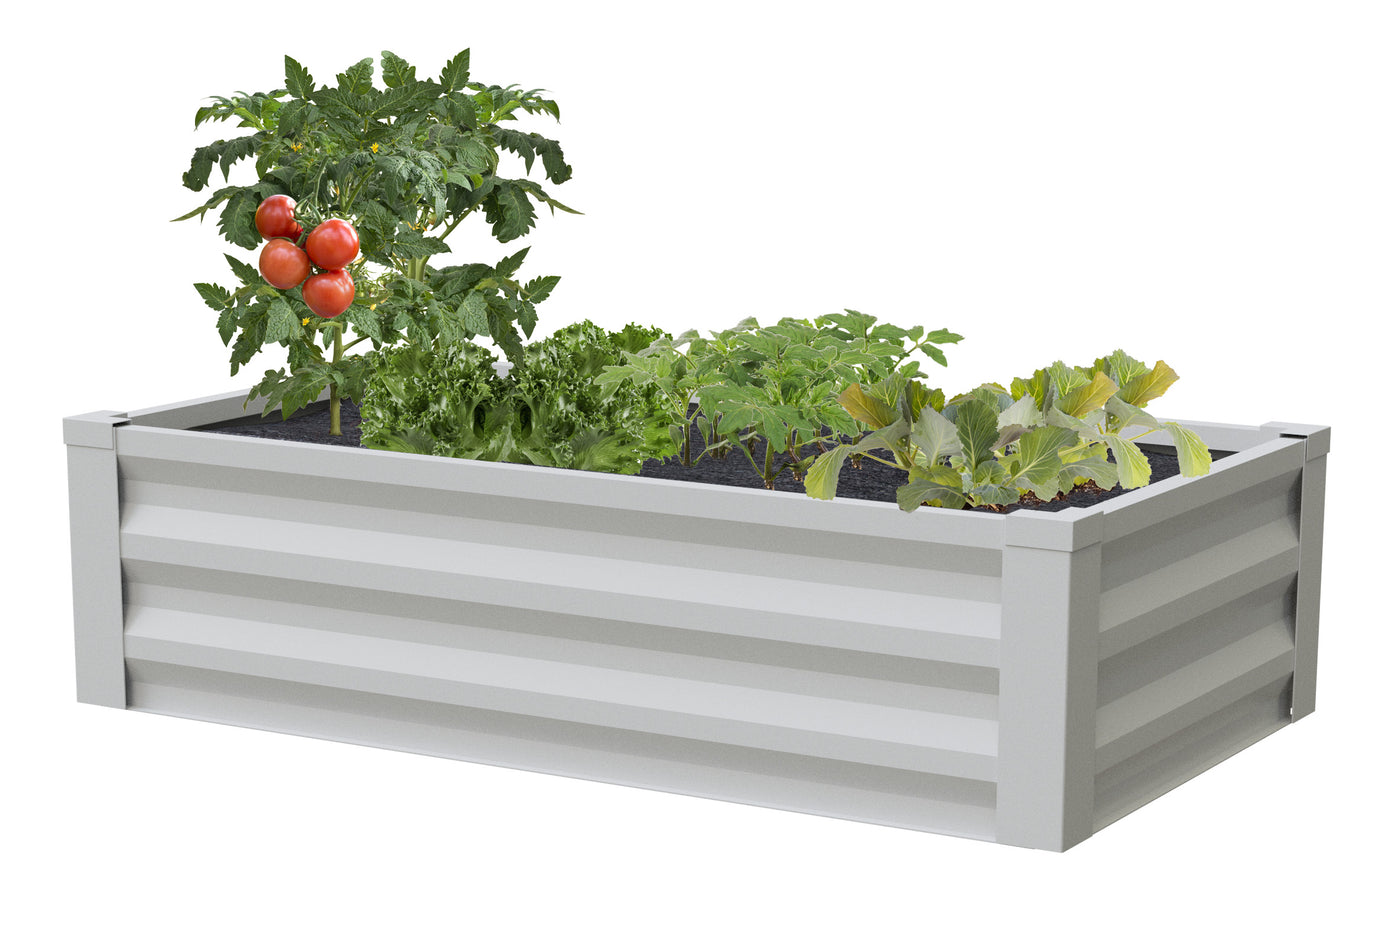 Picture of: Metal Raised Garden Bed 47 In X 26 In X 12 In Rcm24 Greenes Fence Greenes Fence Company